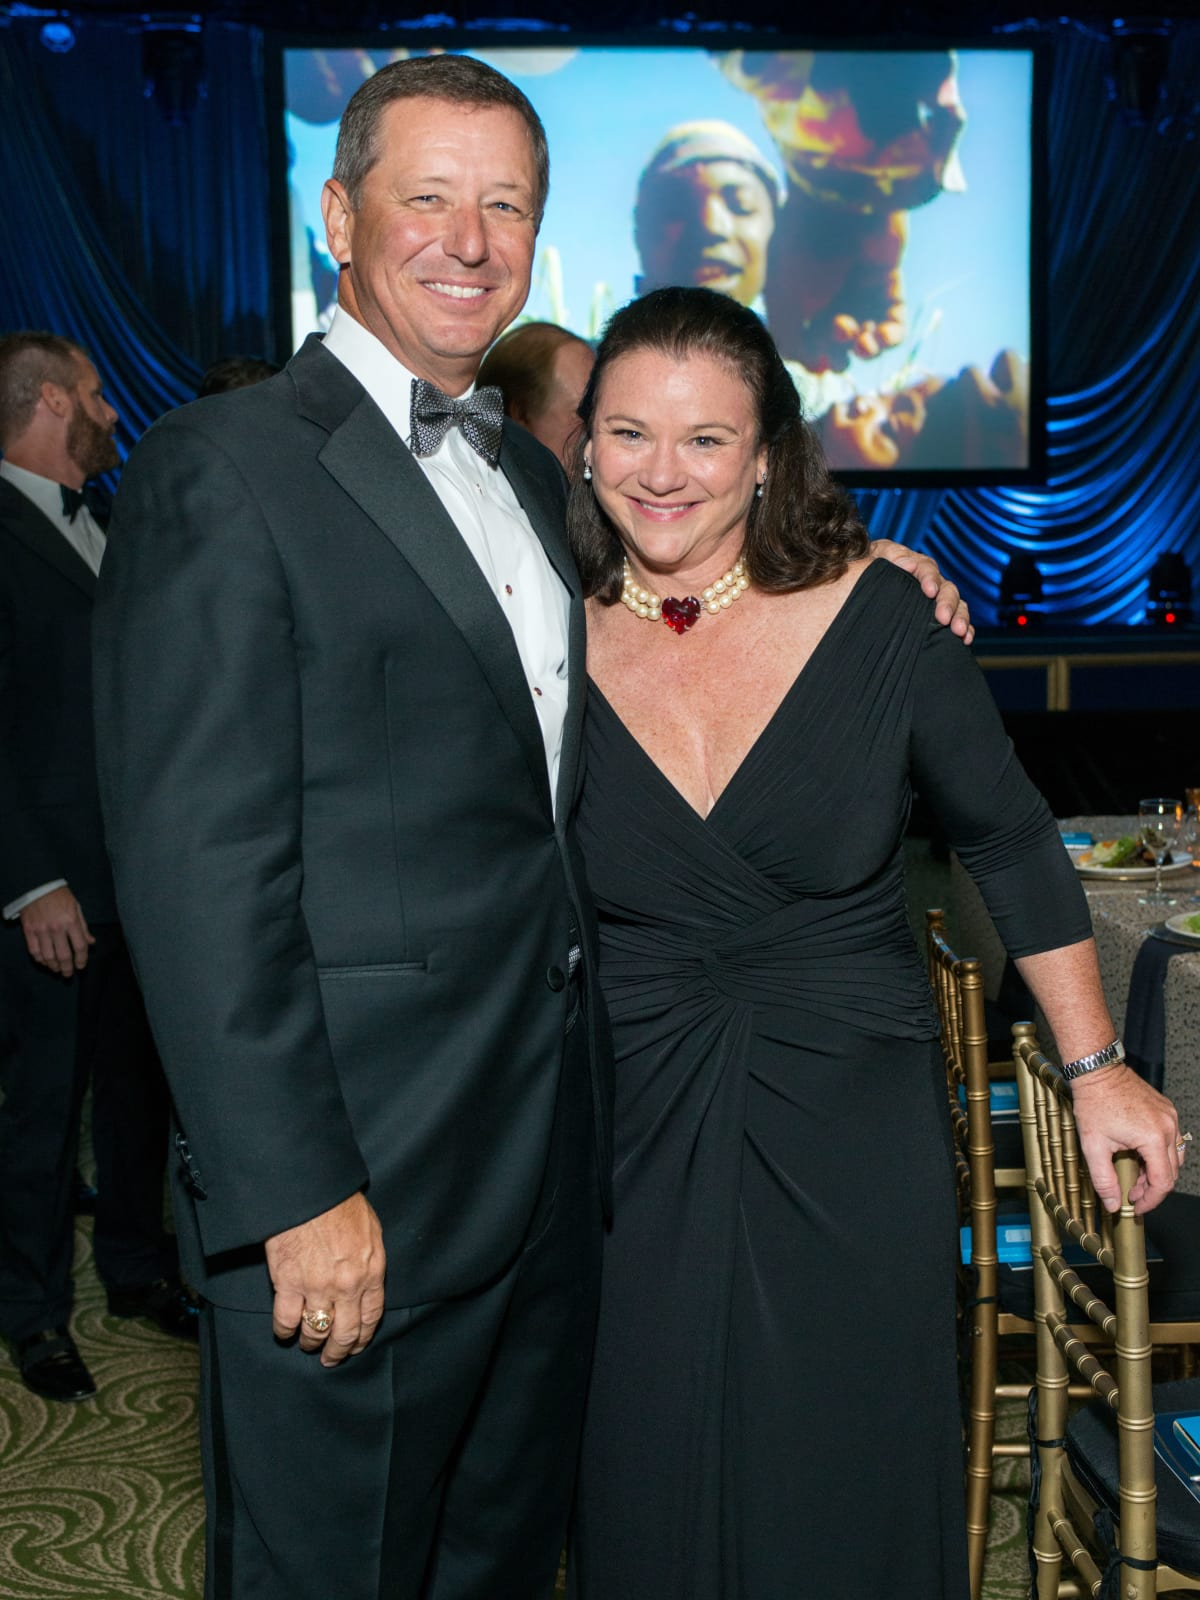 News, Shelby, UNICEF gala, Nov. 2015, David Wuthrich, Tara Wuthrich